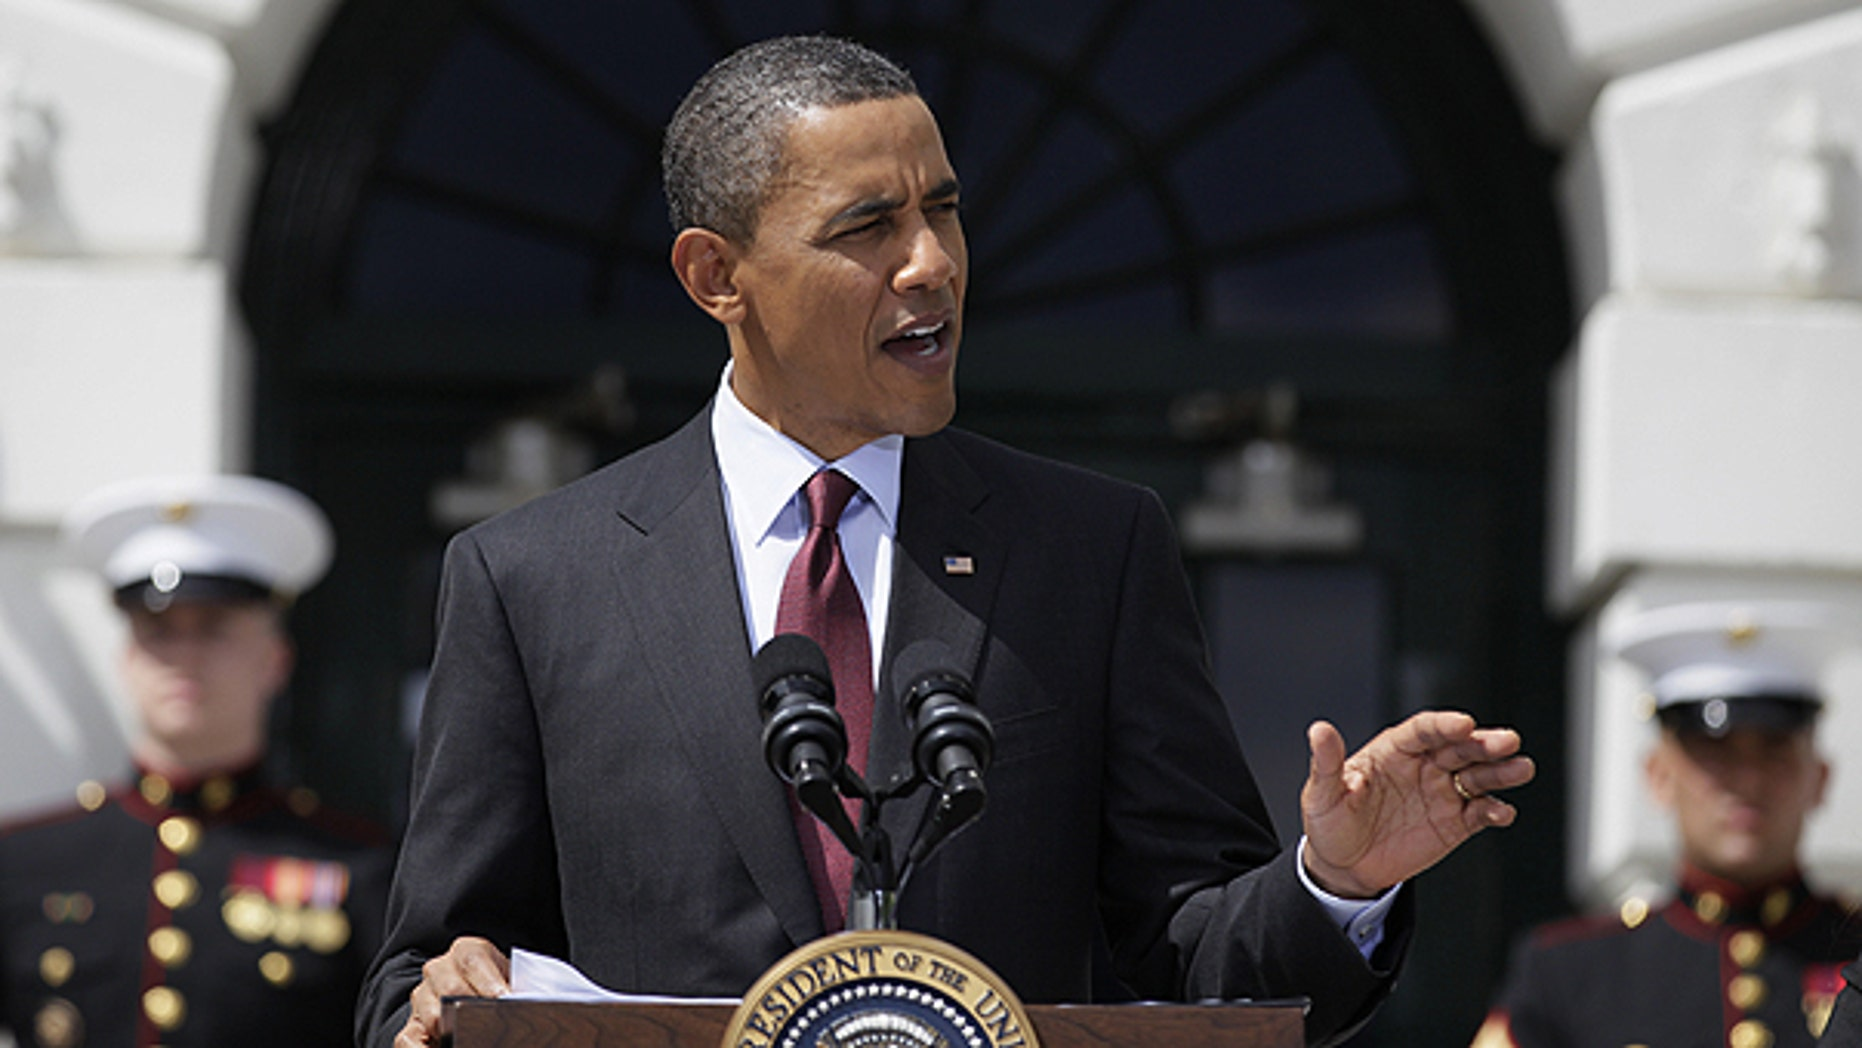 May 4: Obama speaks as he welcomes the Wounded Warrior Project's Soldier Ride on the South Lawn of the White House.